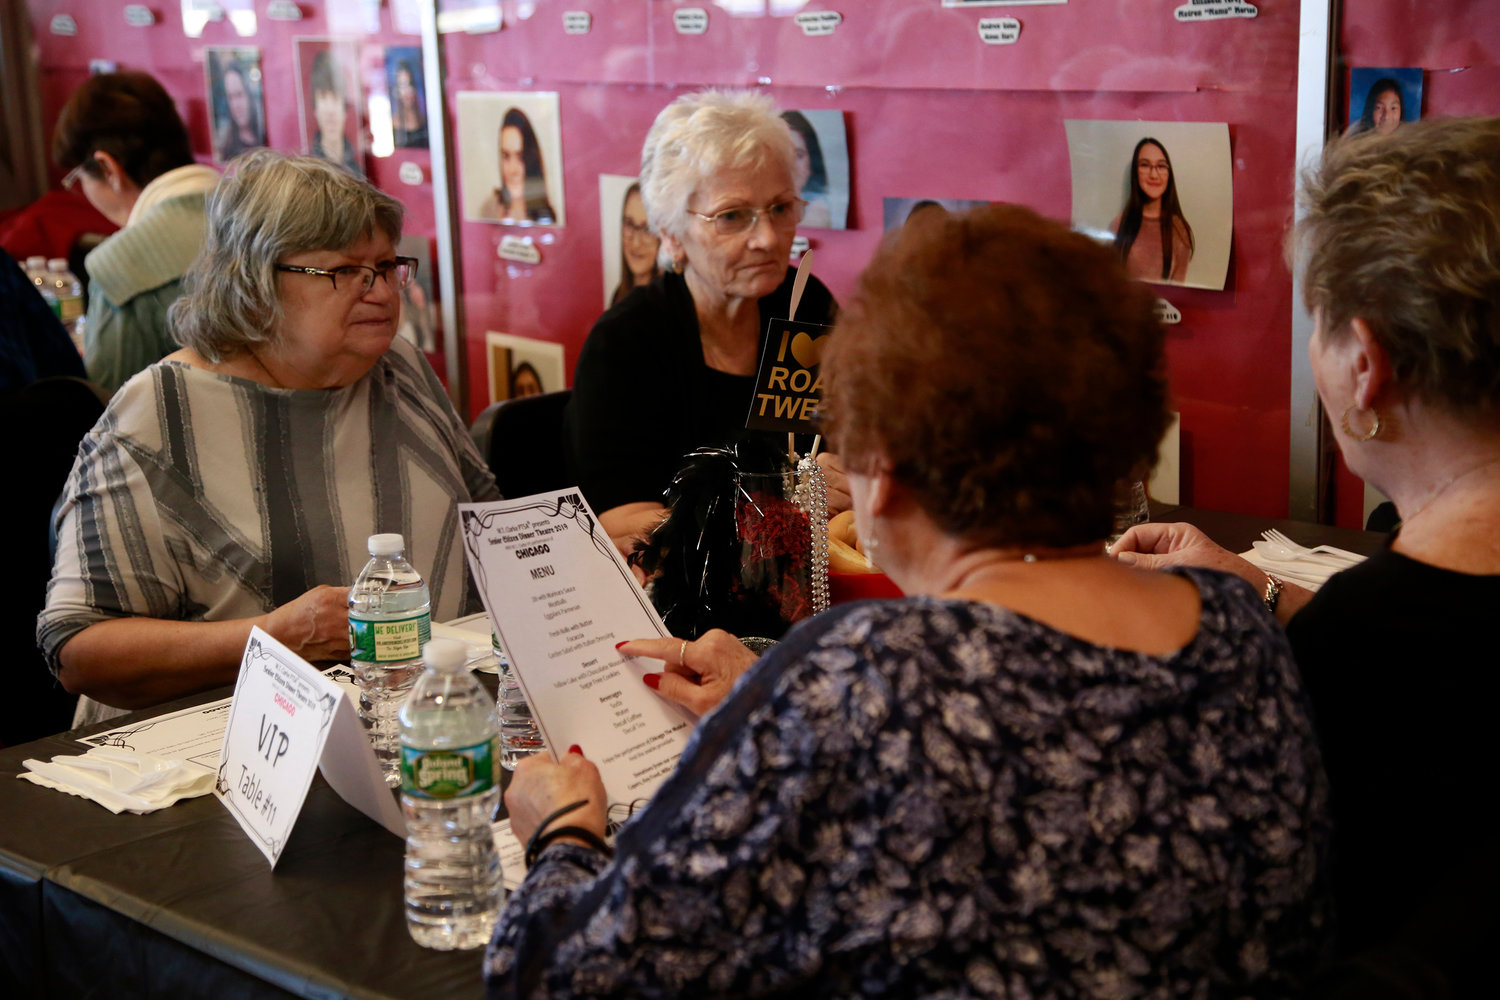 Carmen Rivera, Maureen O'Hea, Alice Boccia and Rosemary Velardo looked over a lunch menu at the Senior Citizens' Dinner Theater, sponsored by the W.T. Clarke Parent Teacher's Association in collaboration with the East Meadow Kiwanis and Clarke Theater Arts Parents Association.